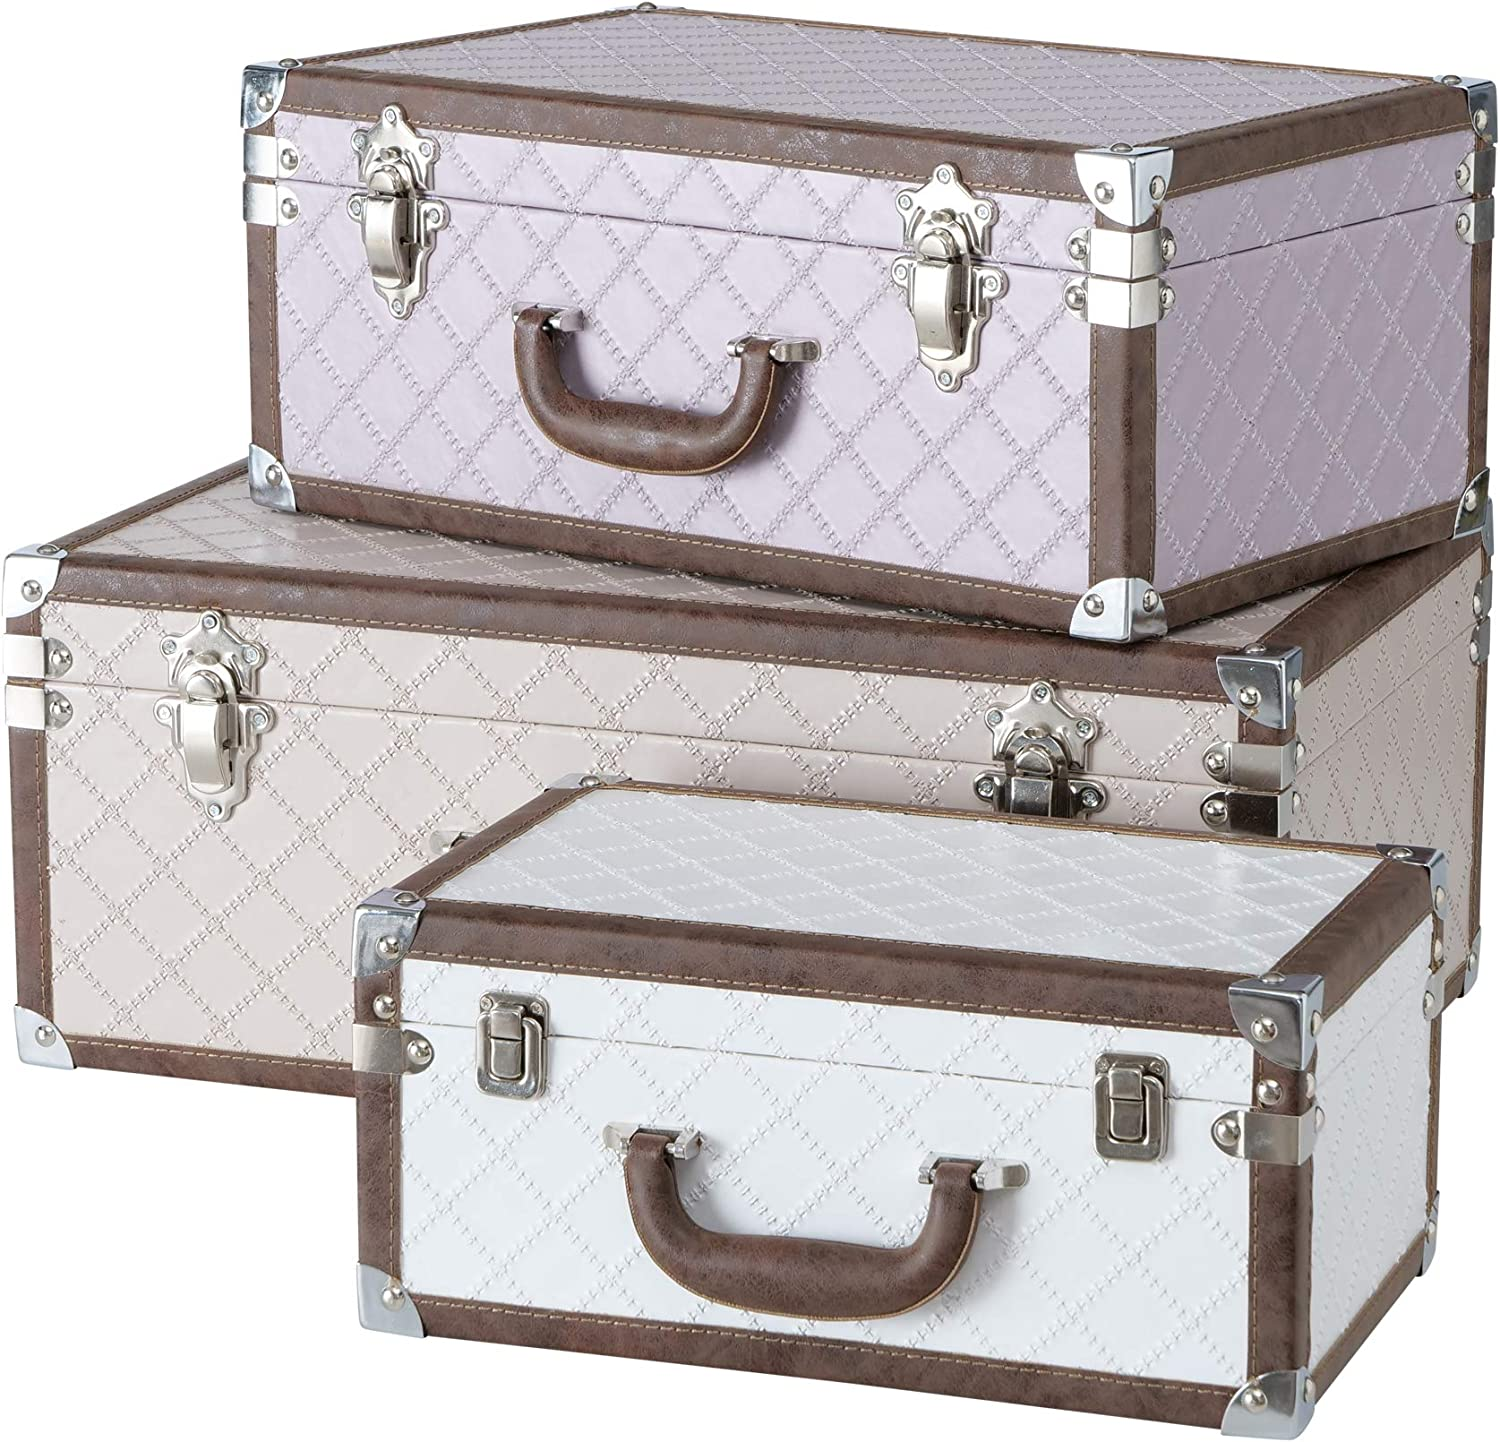 WHW Whole House Worlds Iconic Suitcase Storage Boxes, Set of 3, Metal Clad Corners, Vintage Faux Leather Accents, Quilt Pattern in Pink, Ivory and Beige, Fabric Lined